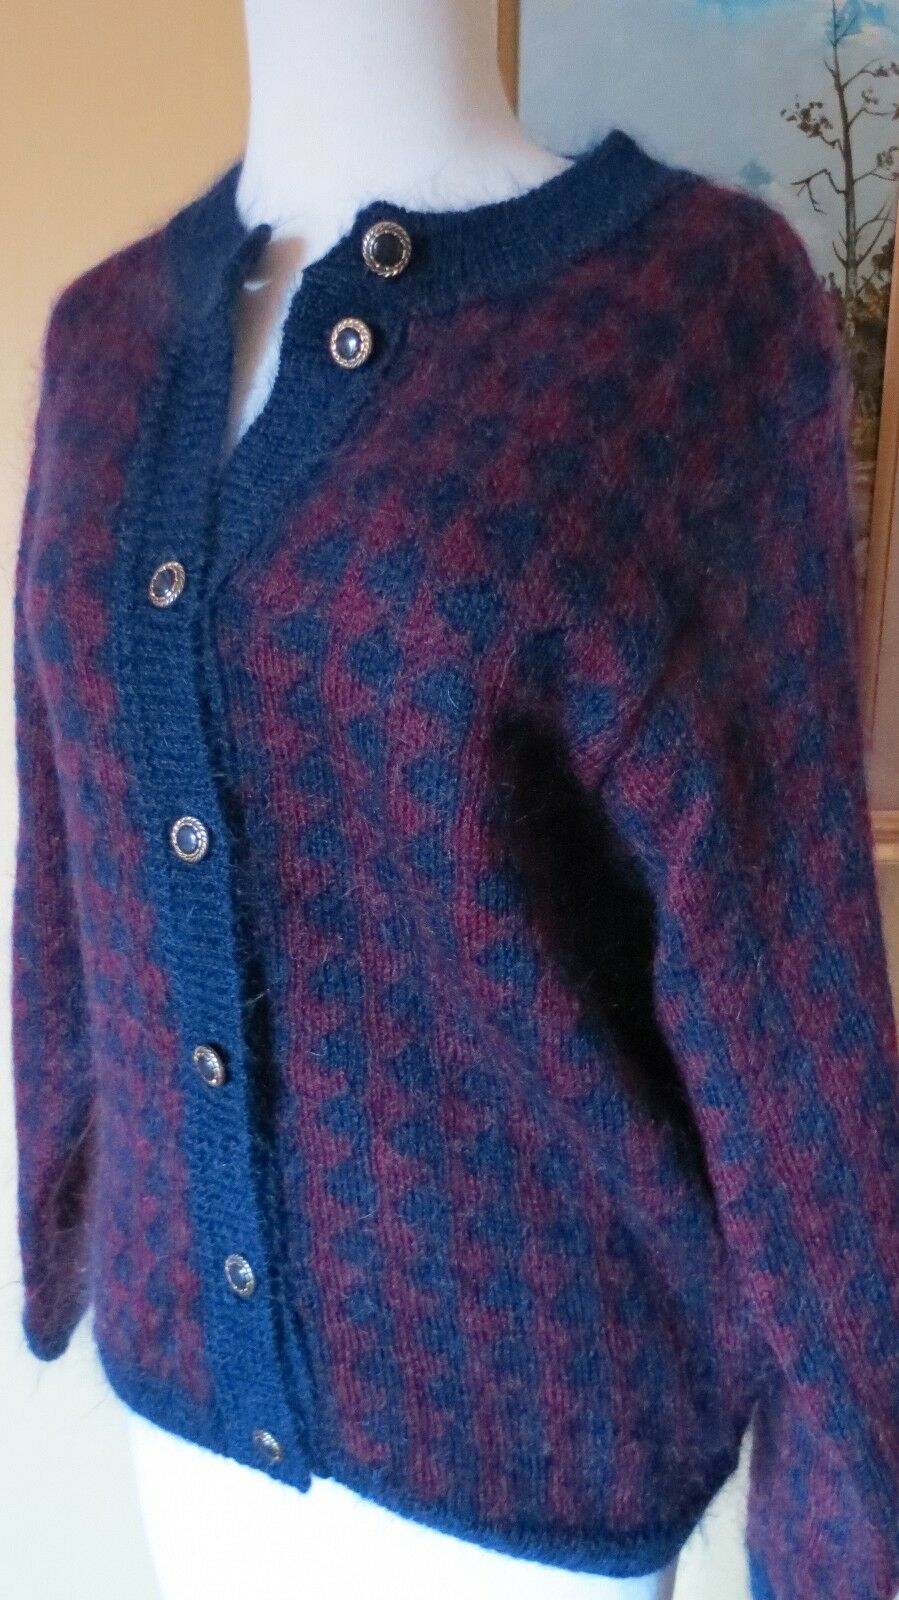 Vintage Women's Mohair blend Cardigan Sweater Scotland SMall 34-36 bust